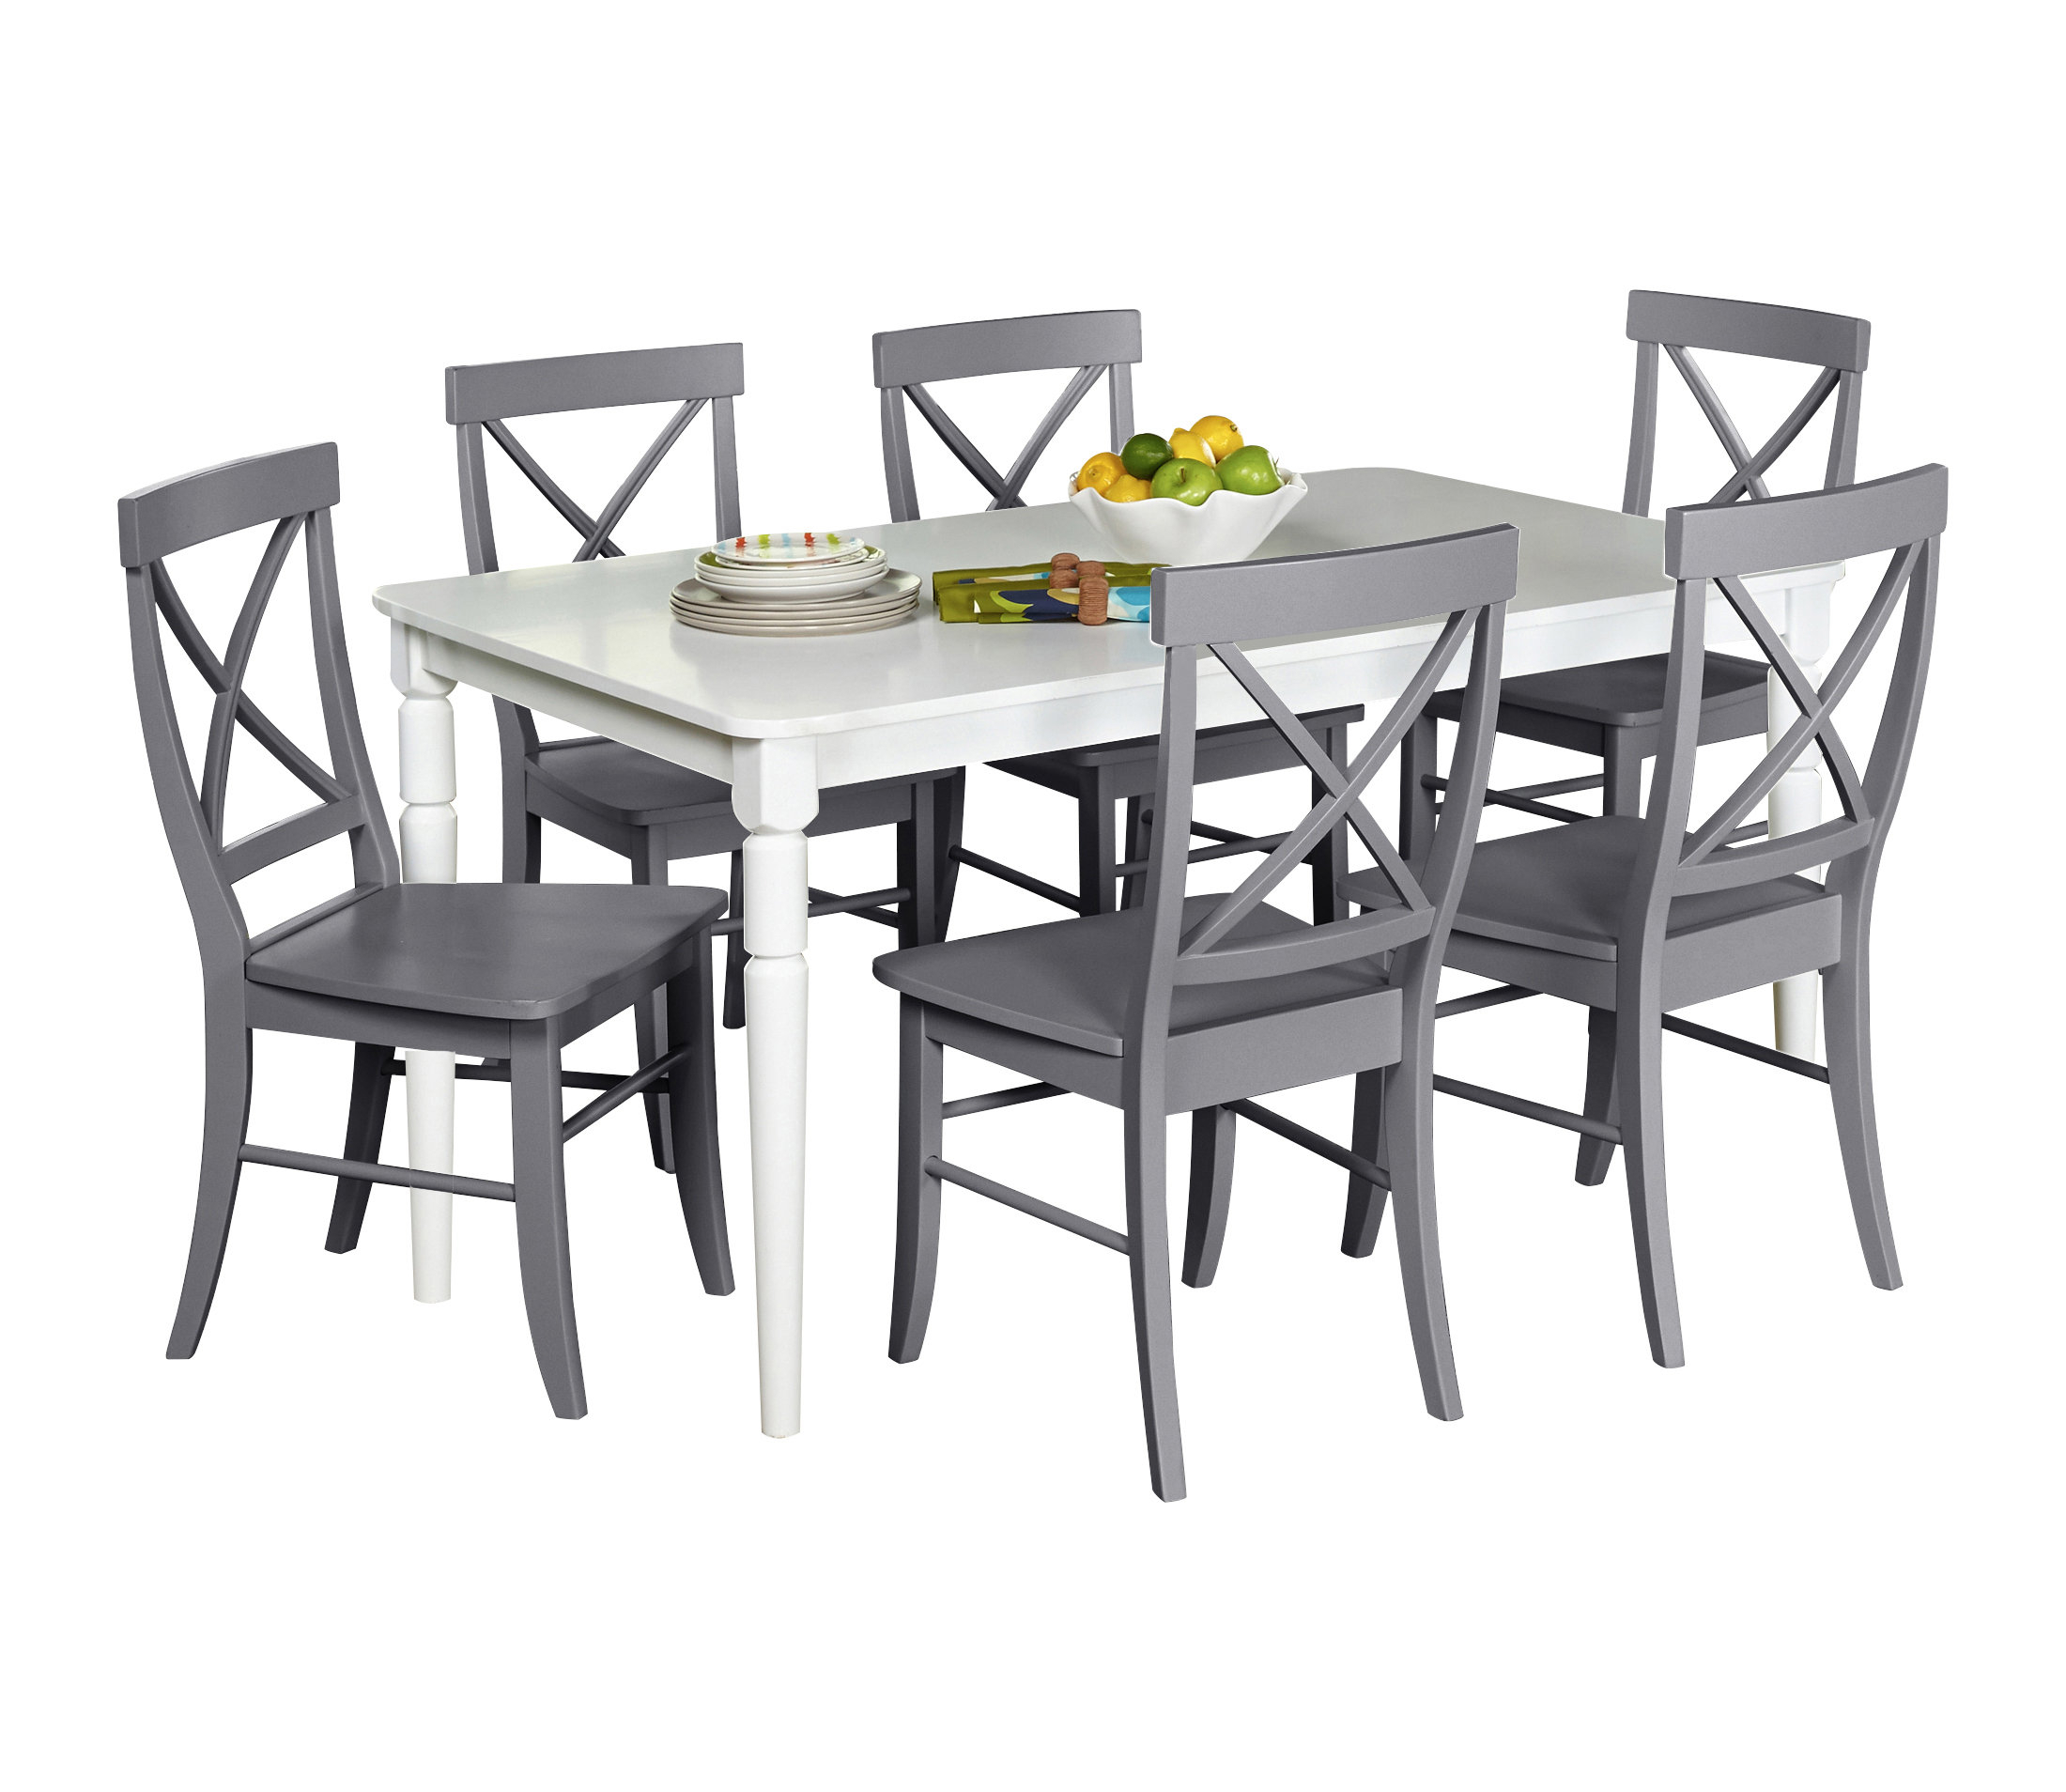 Beachcrest Home Brookwood 7 Piece Dining Set Regarding Well Known Baxton Studio Keitaro 5 Piece Dining Sets (Gallery 12 of 20)